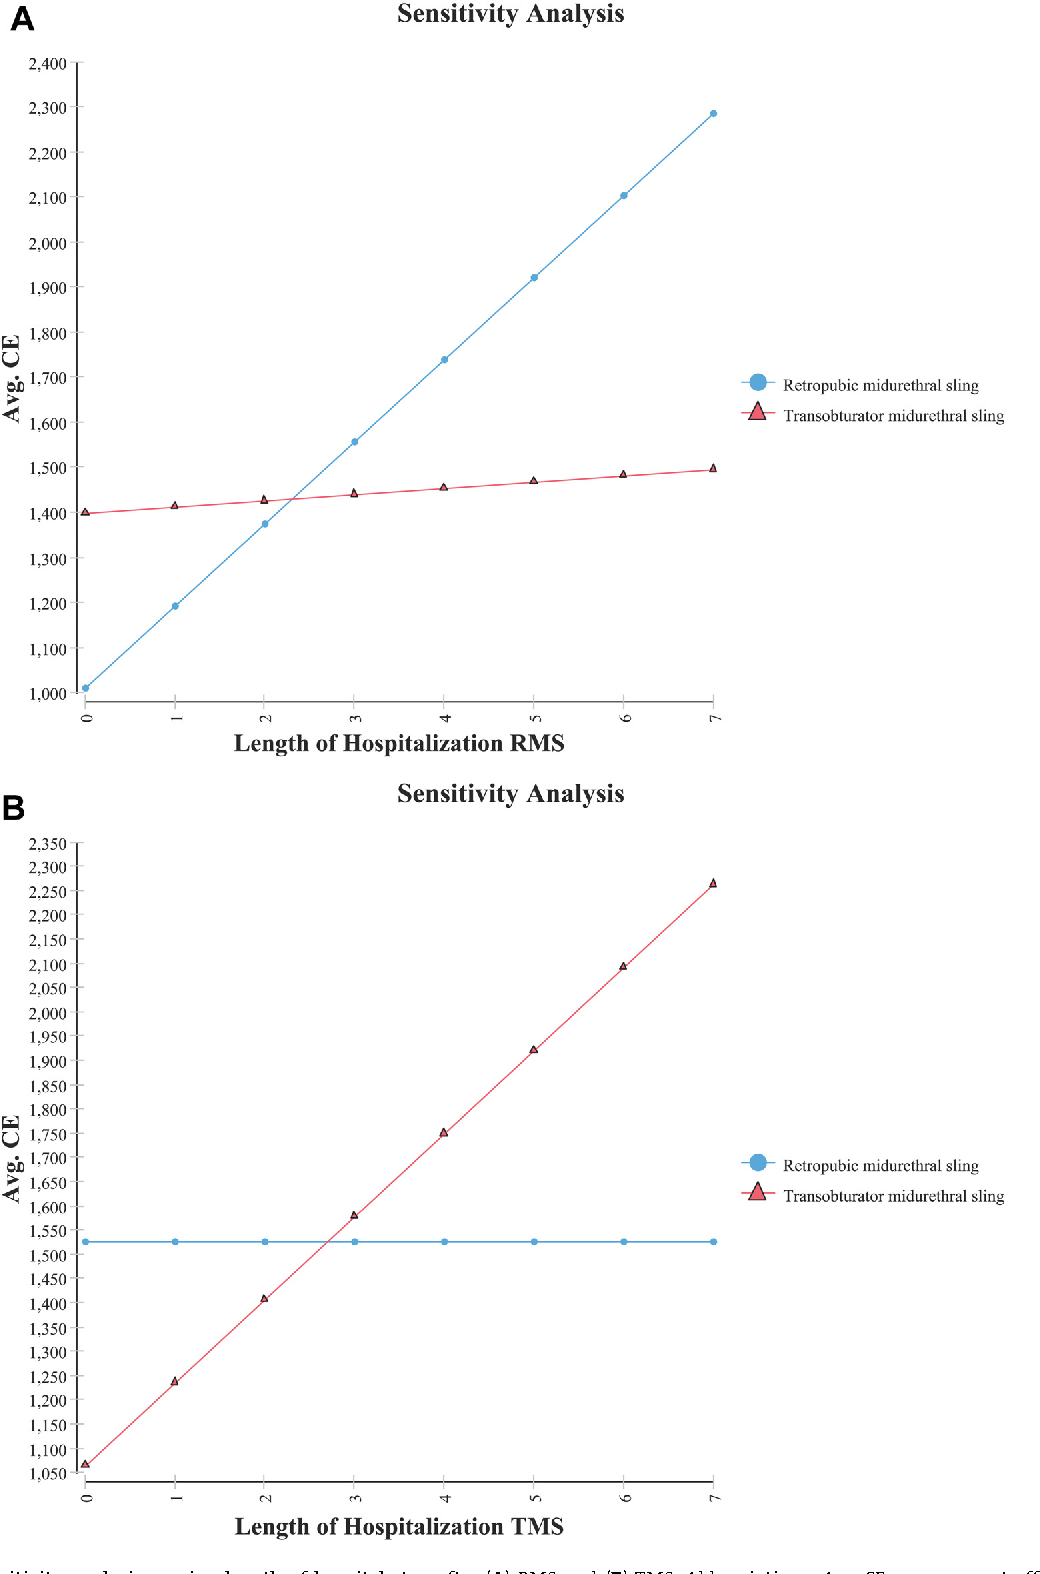 Fig. 2. One-way sensitivity analysis varying length of hospital stay after (A) RMS and (B) TMS. Abbreviations: Avg CE, average cost effectiveness; RMS, retropubic midurethral sling; TMS, transobturator midurethral sling.